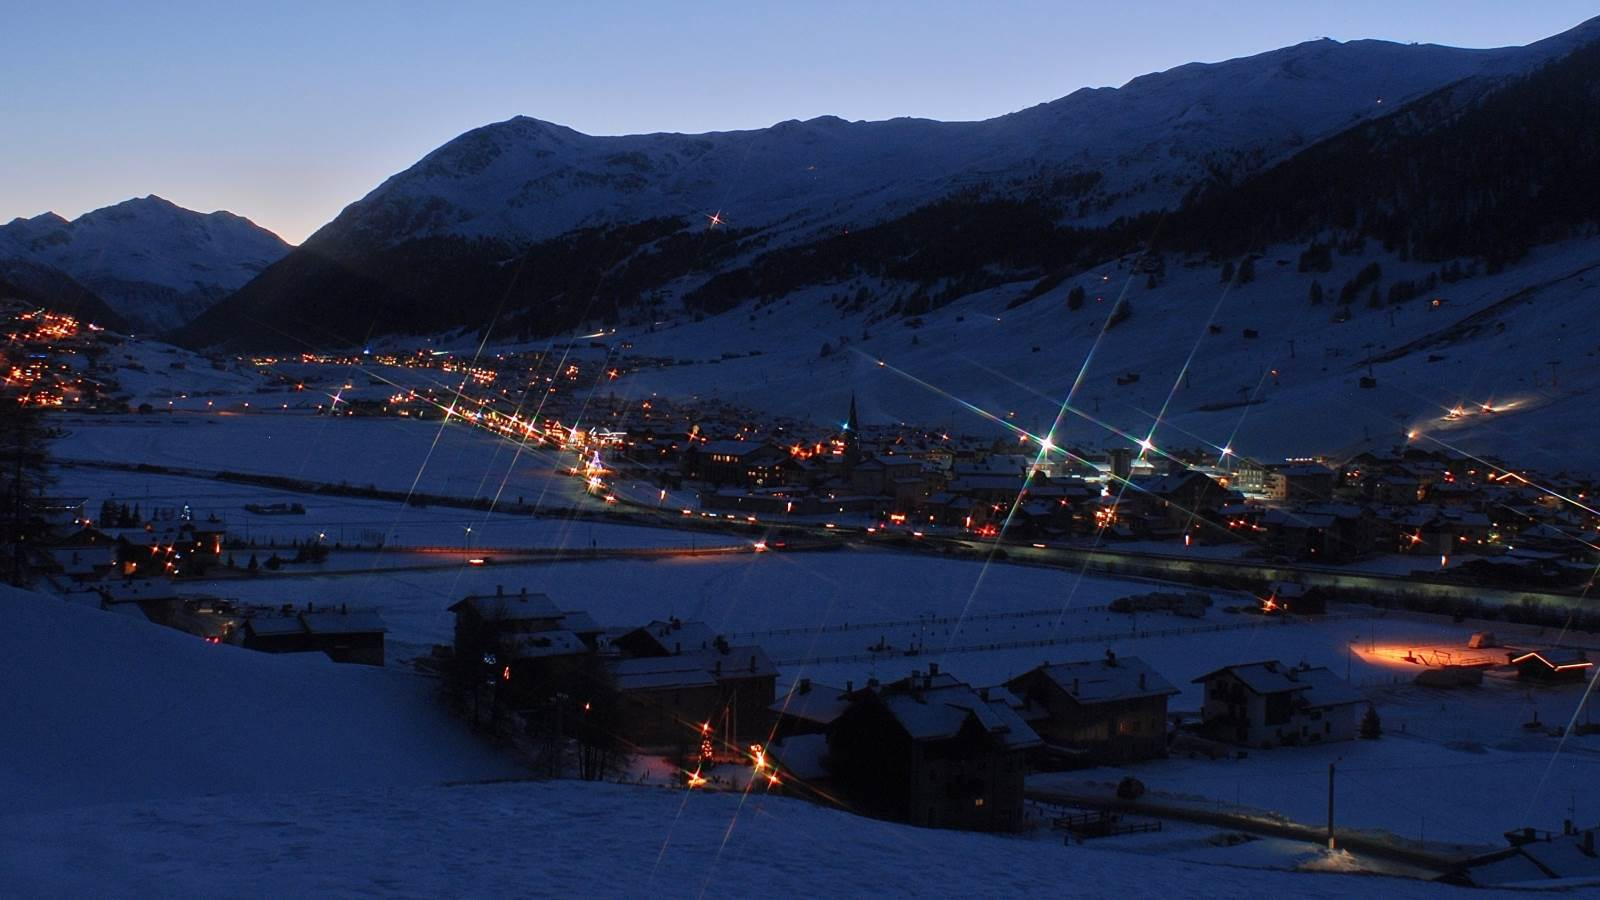 Livigno all'imbrunire